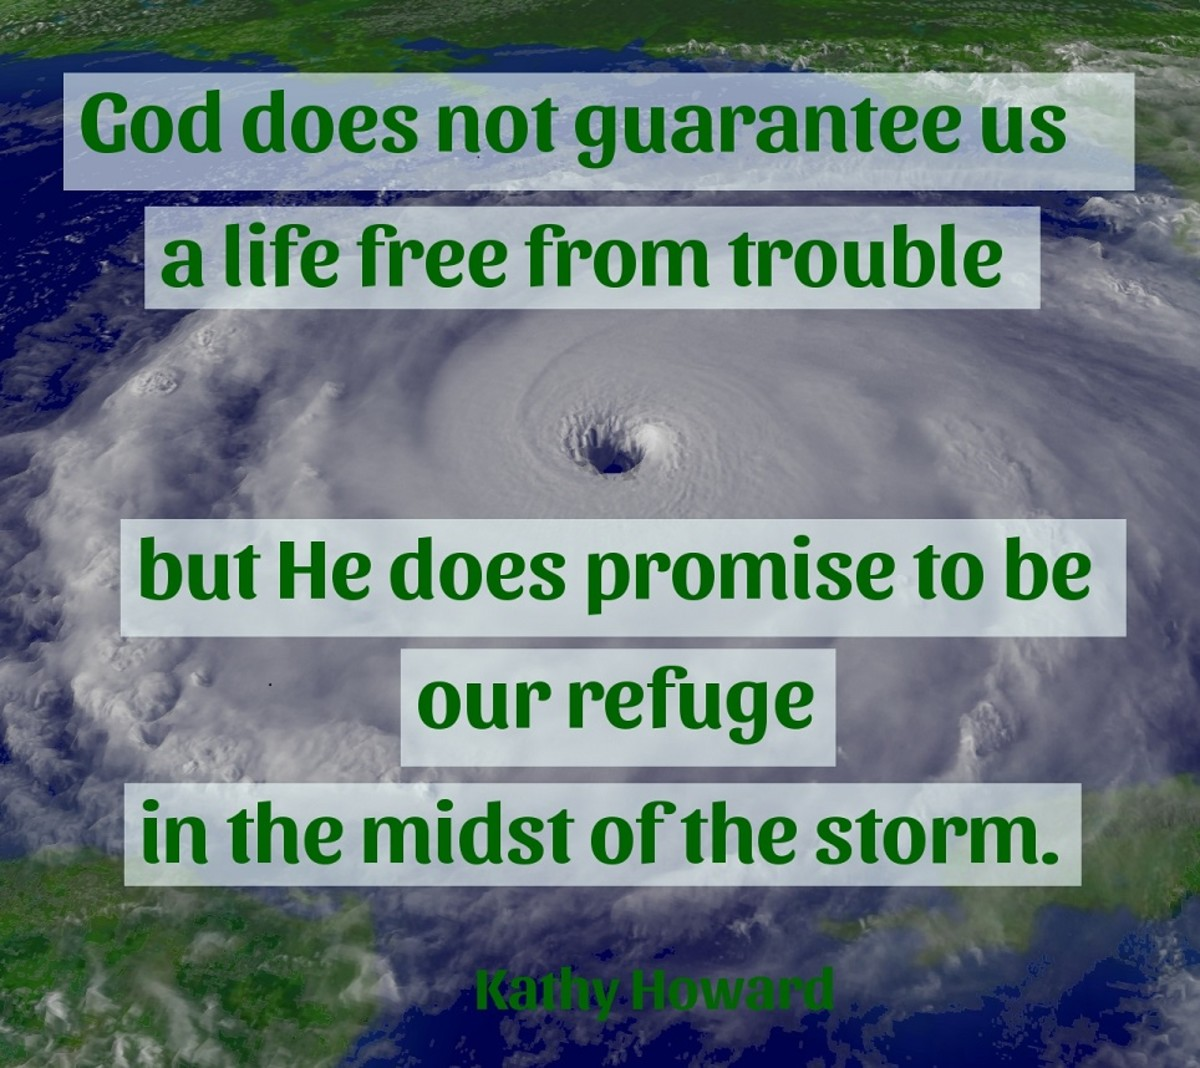 God does promise to be our refuge in the midst of the storm.